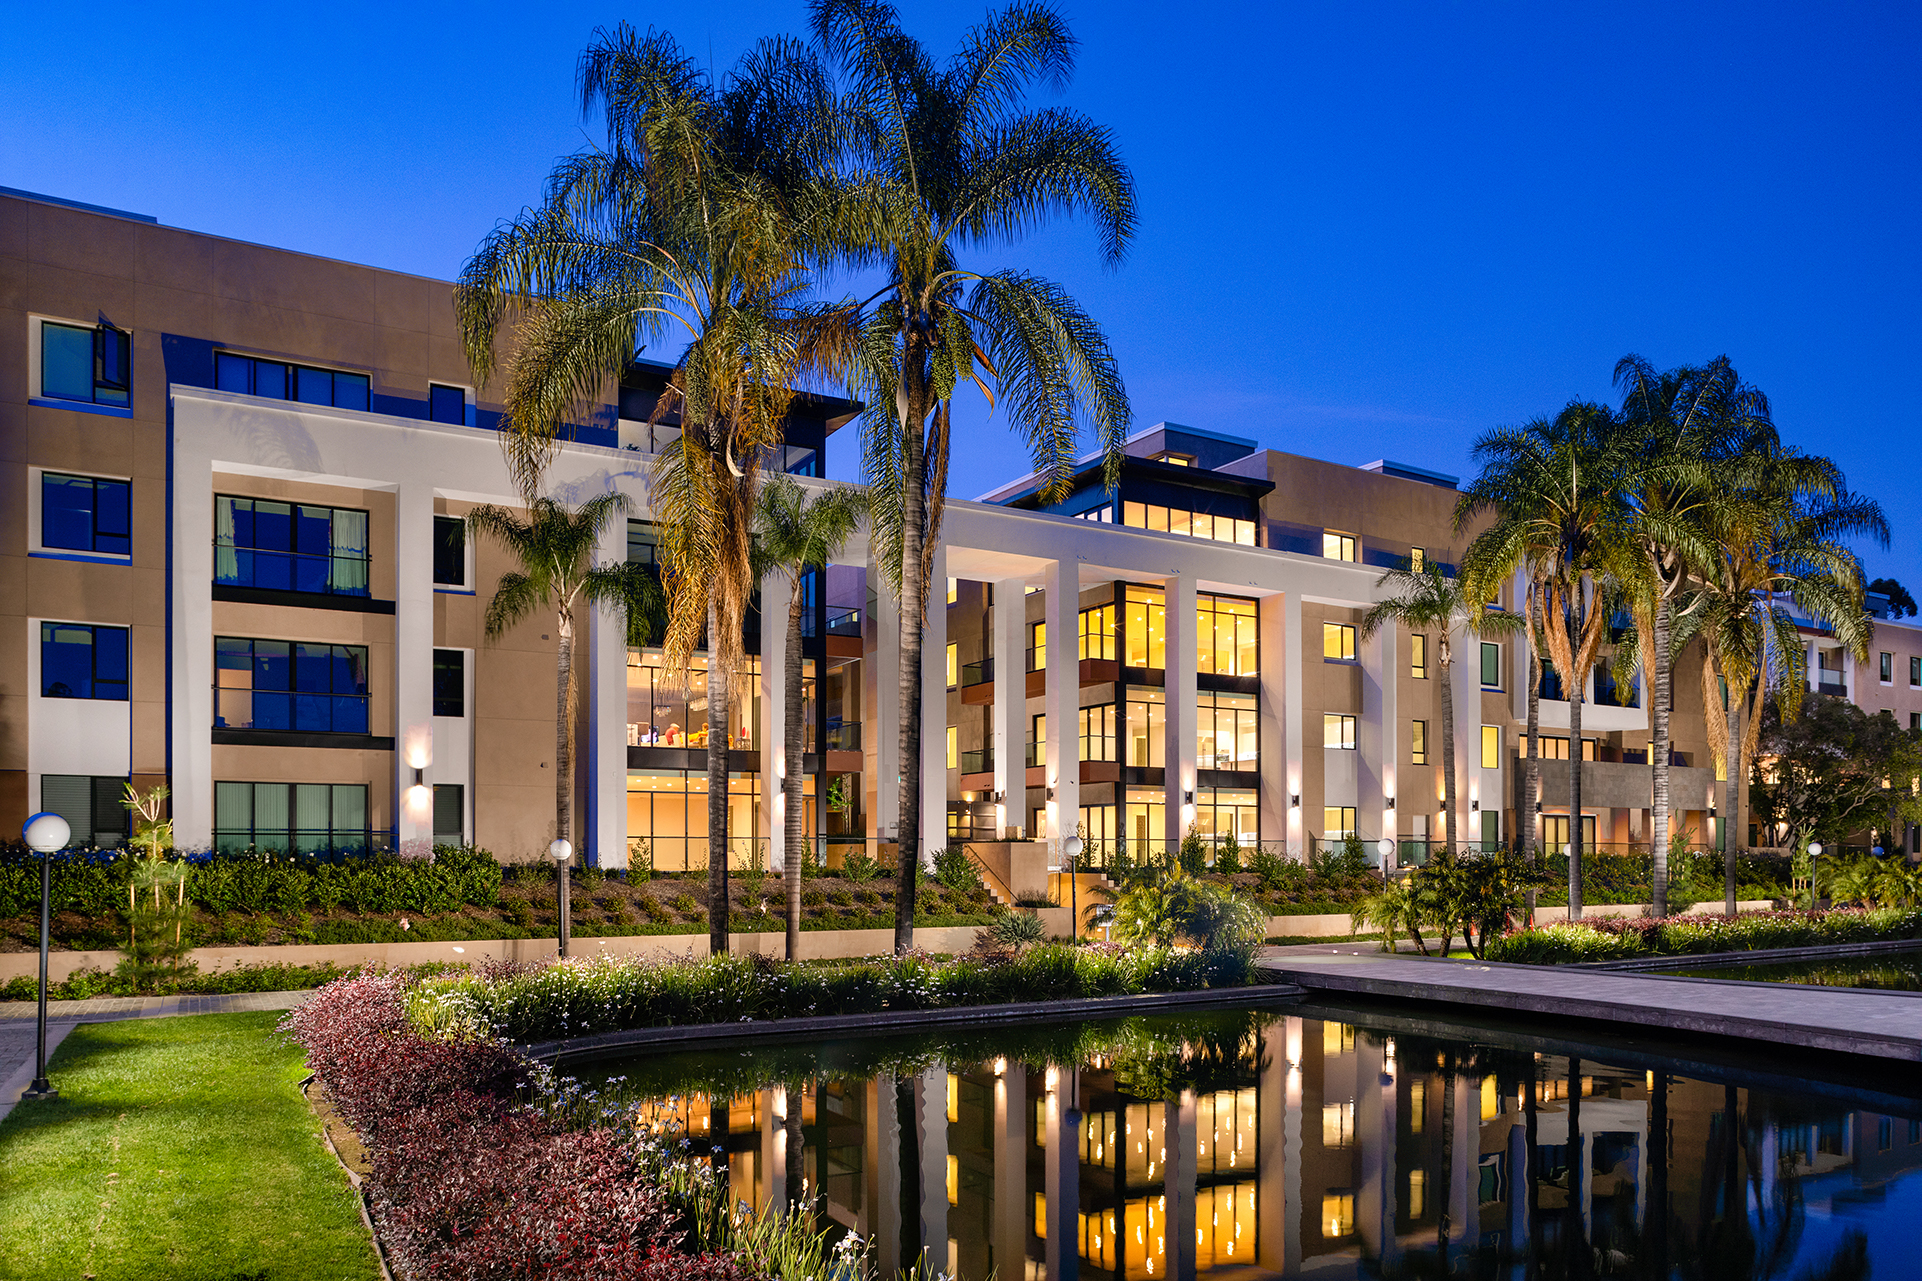 Exterior view of new condos for sale in Pasadena at the Terraces at the Ambassador Gardens